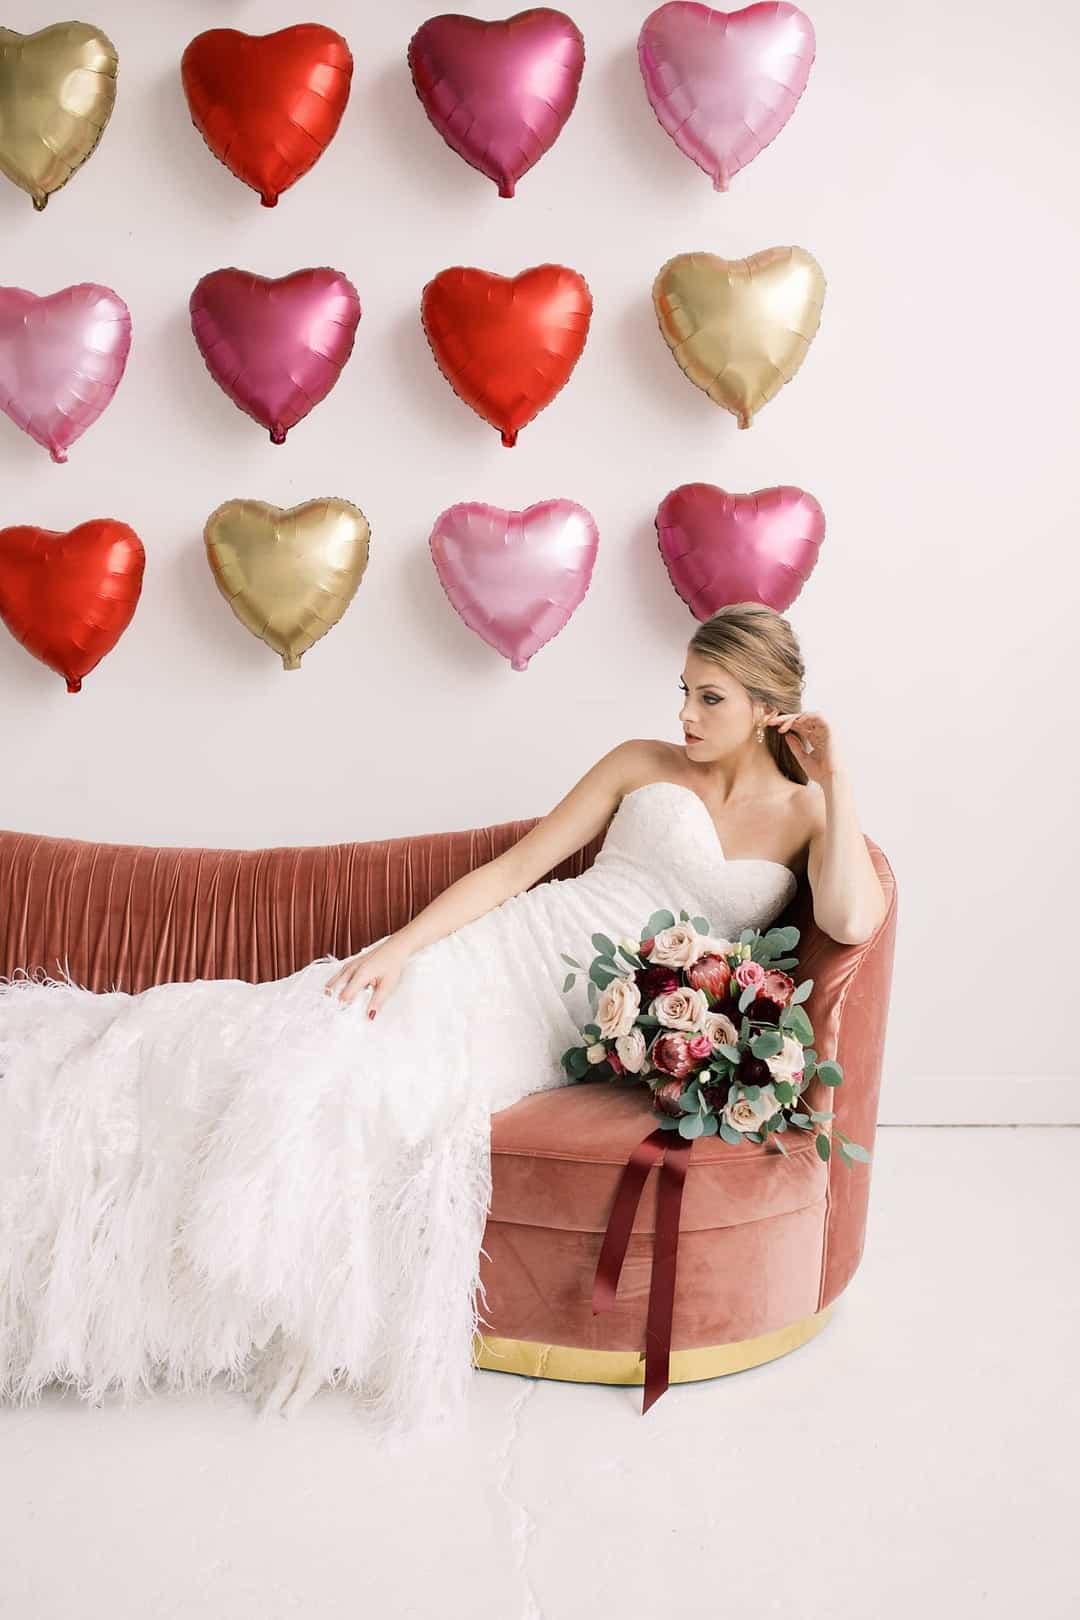 Valentines Day wedding inspiration, featuring giant heart balloon backdrop and romantic feather wedding dress.